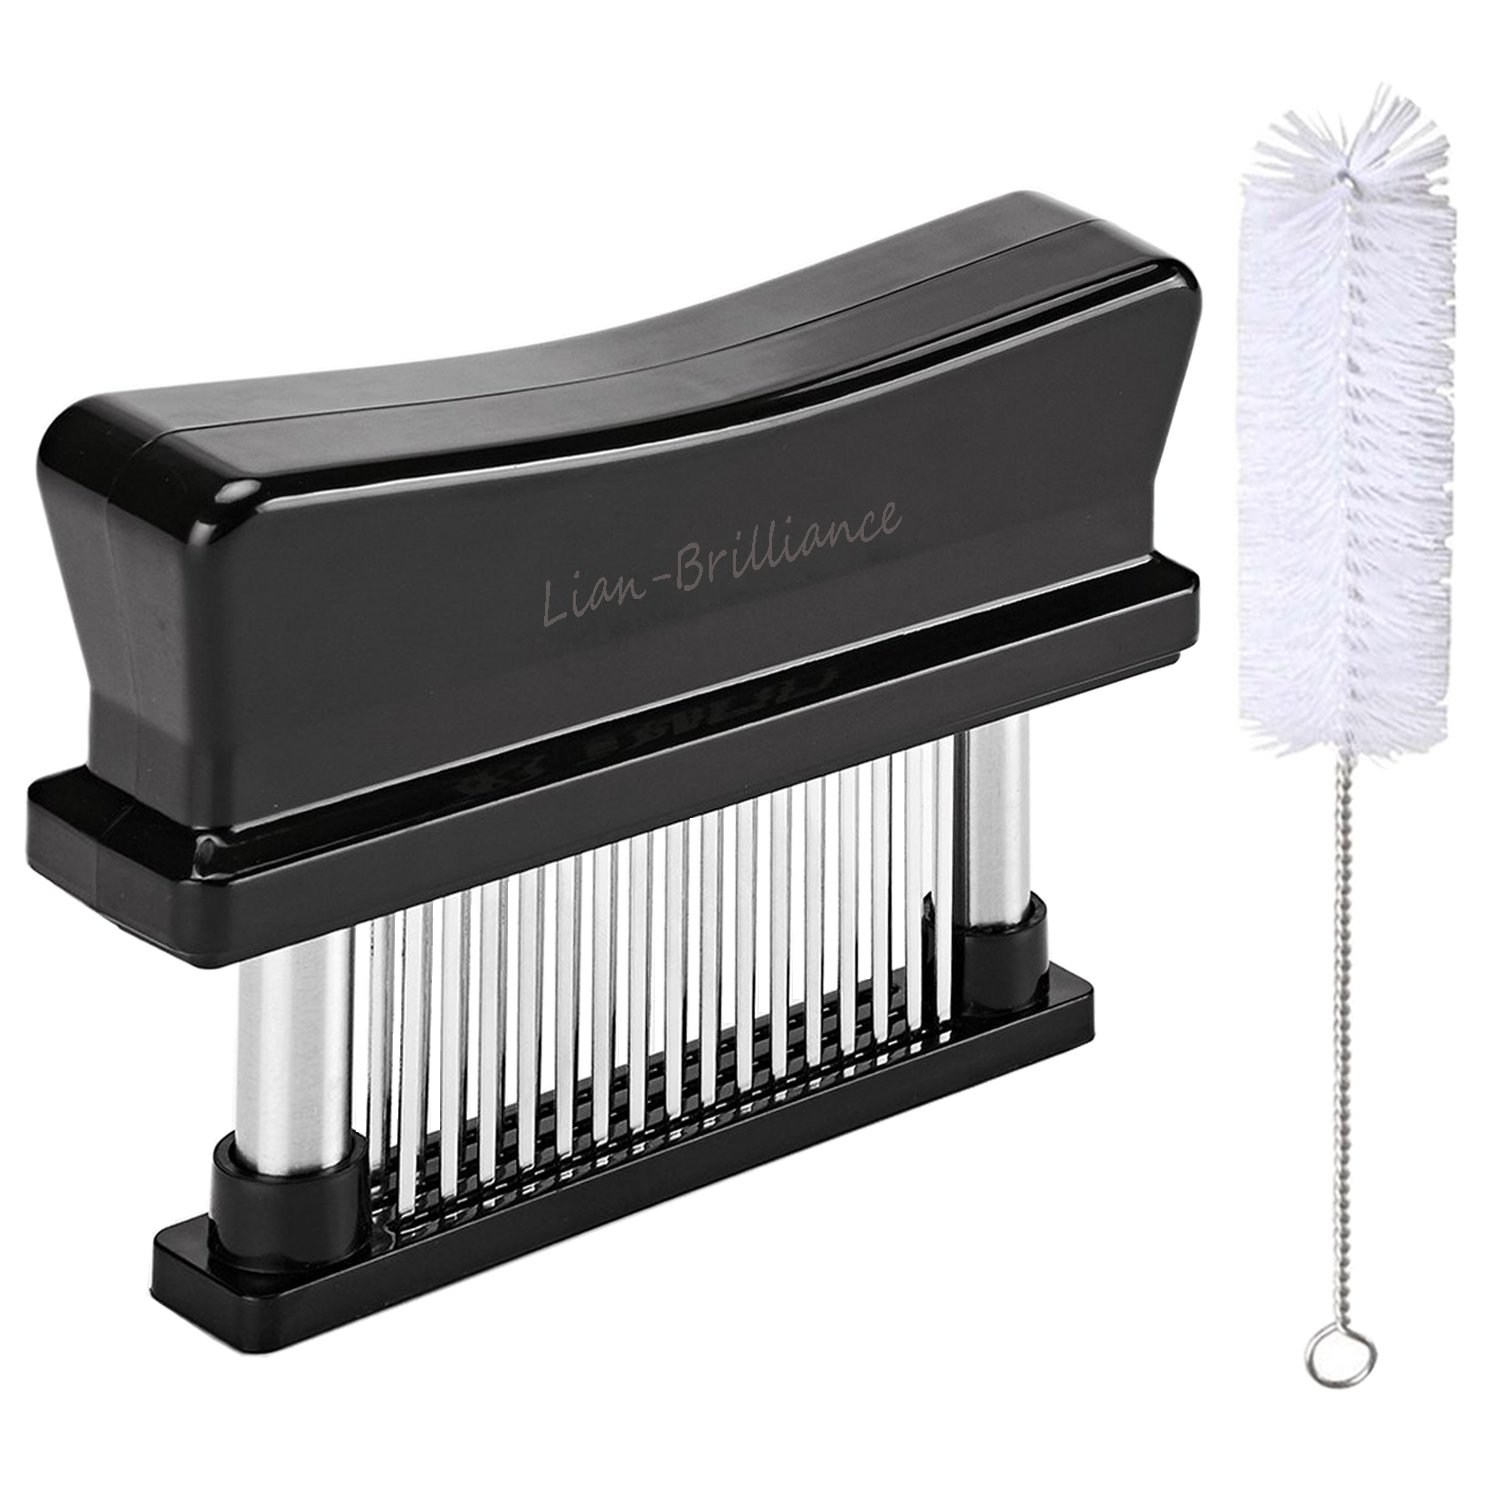 48 Blade Stainless Steel Manual Meat Tenderizer-Professional Tenderizing Steak Beef Veal Pork Fish Chicken in Kitchen and Barbecue – Black Lian-Brilliance